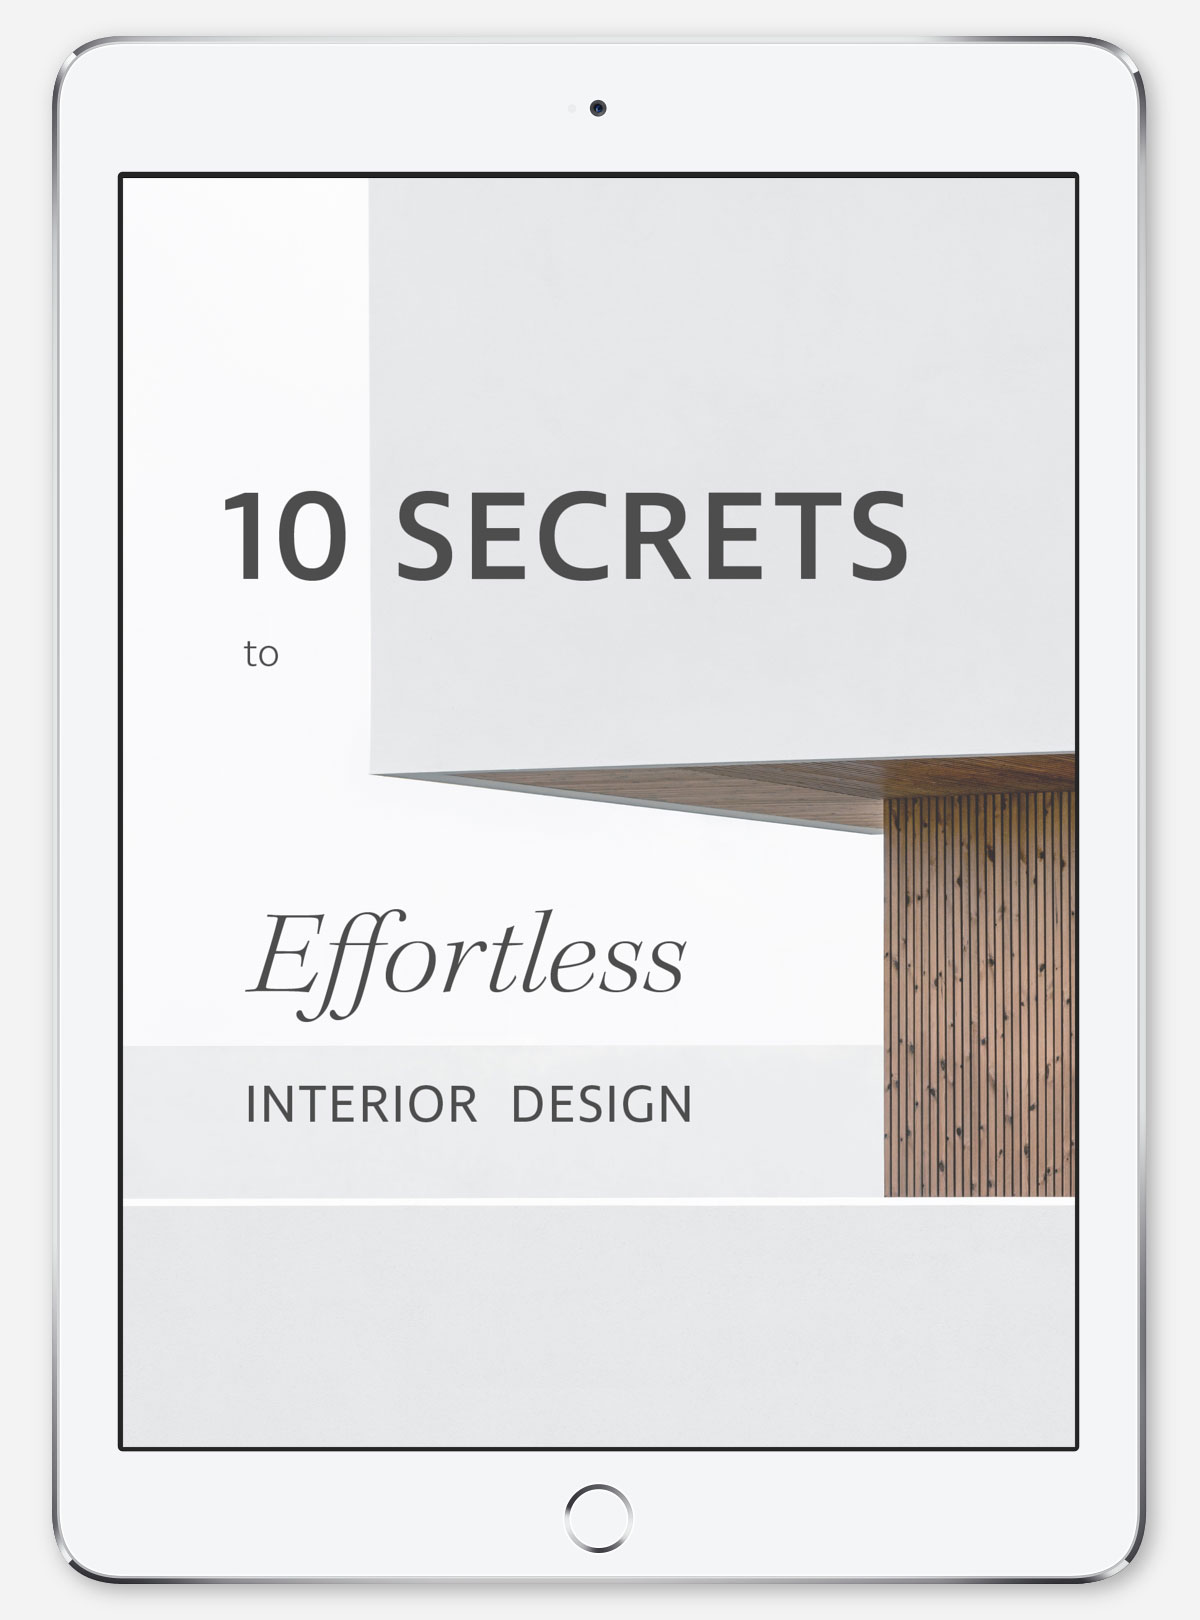 10 Secrets to Effortless Interior Design Ipad by Studio Hazeldean